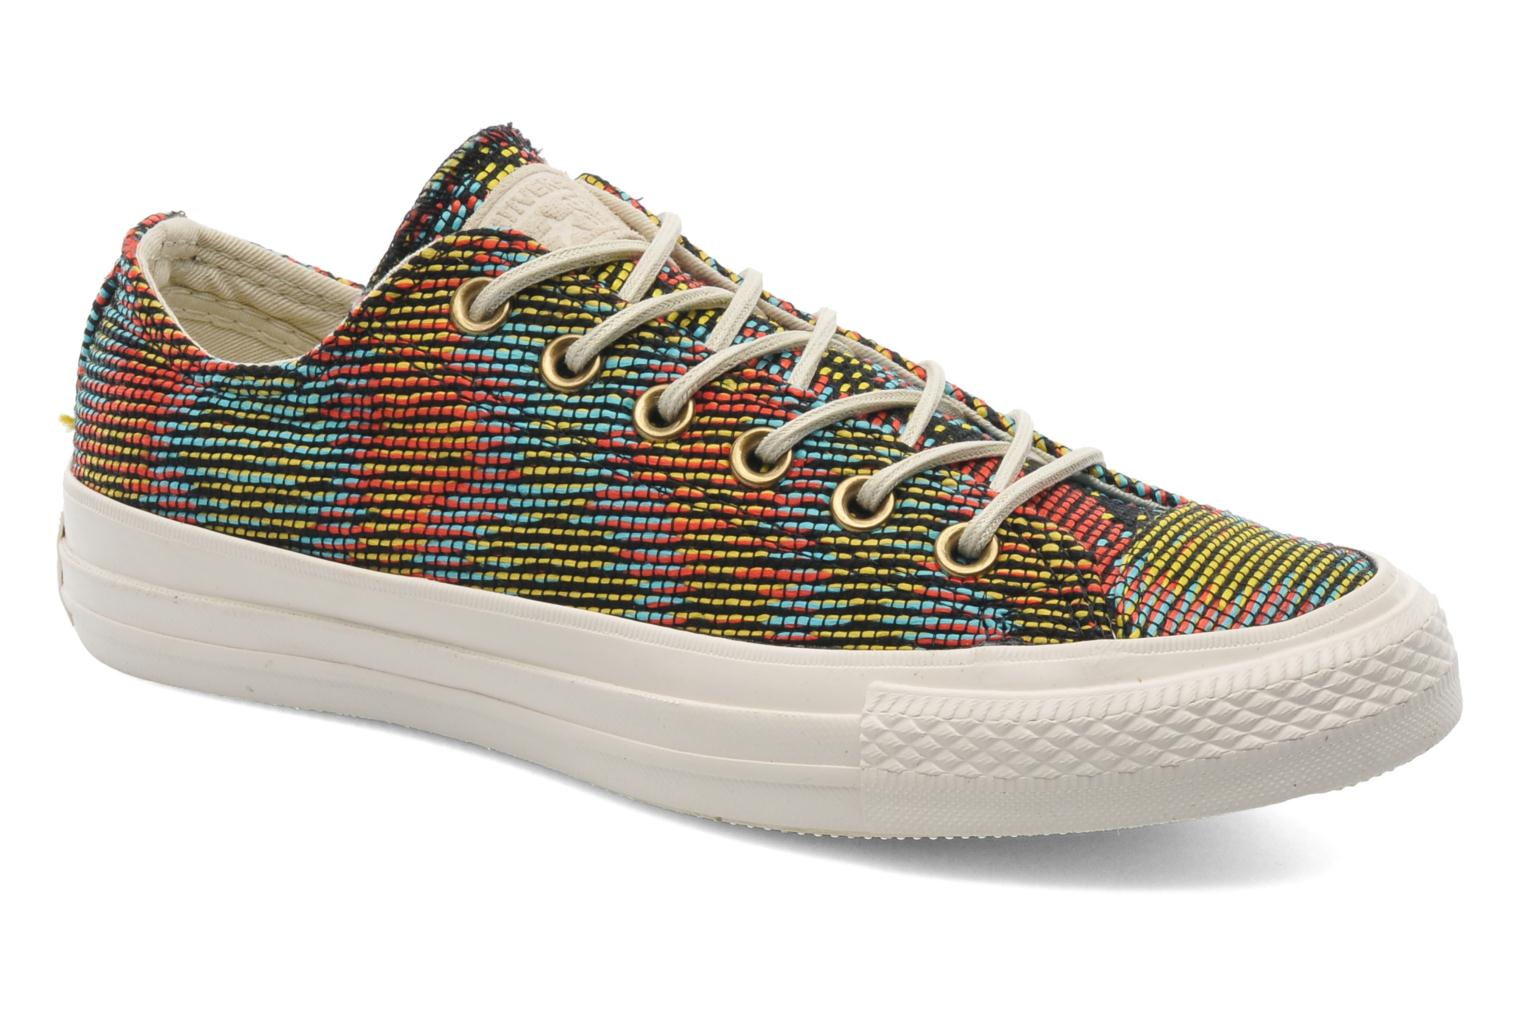 Converse Chuck Taylor All Star Basket Weave Ox W Multicolor aQSfS6X66